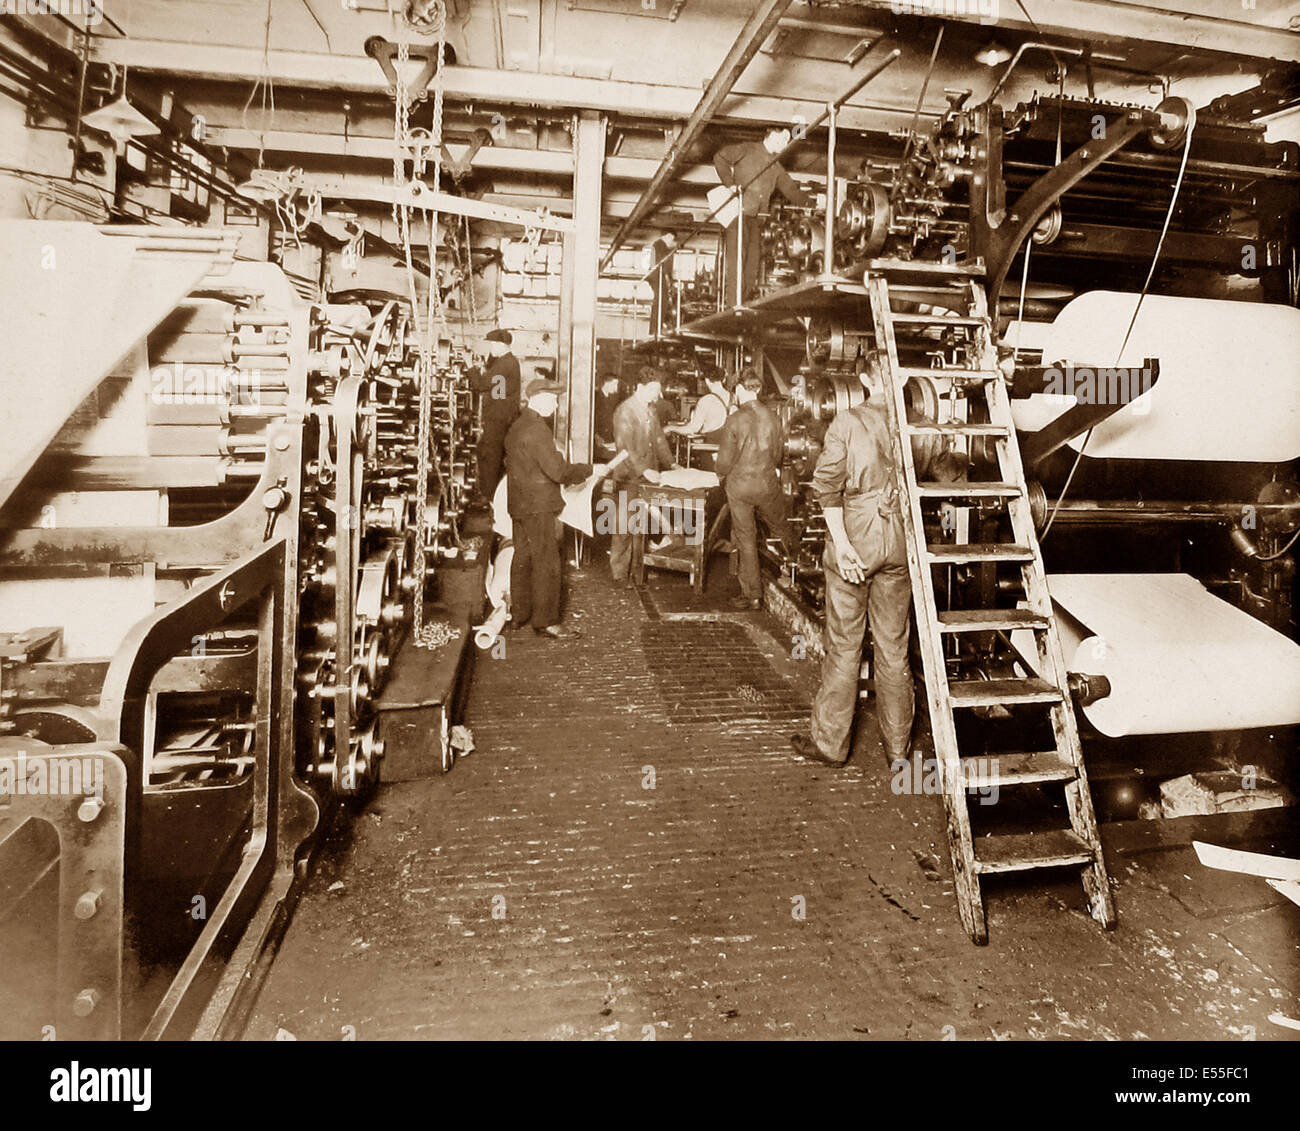 Publishing the Liverpool Express and Weekly Courier - Printing Presses early 1900s - Stock Image